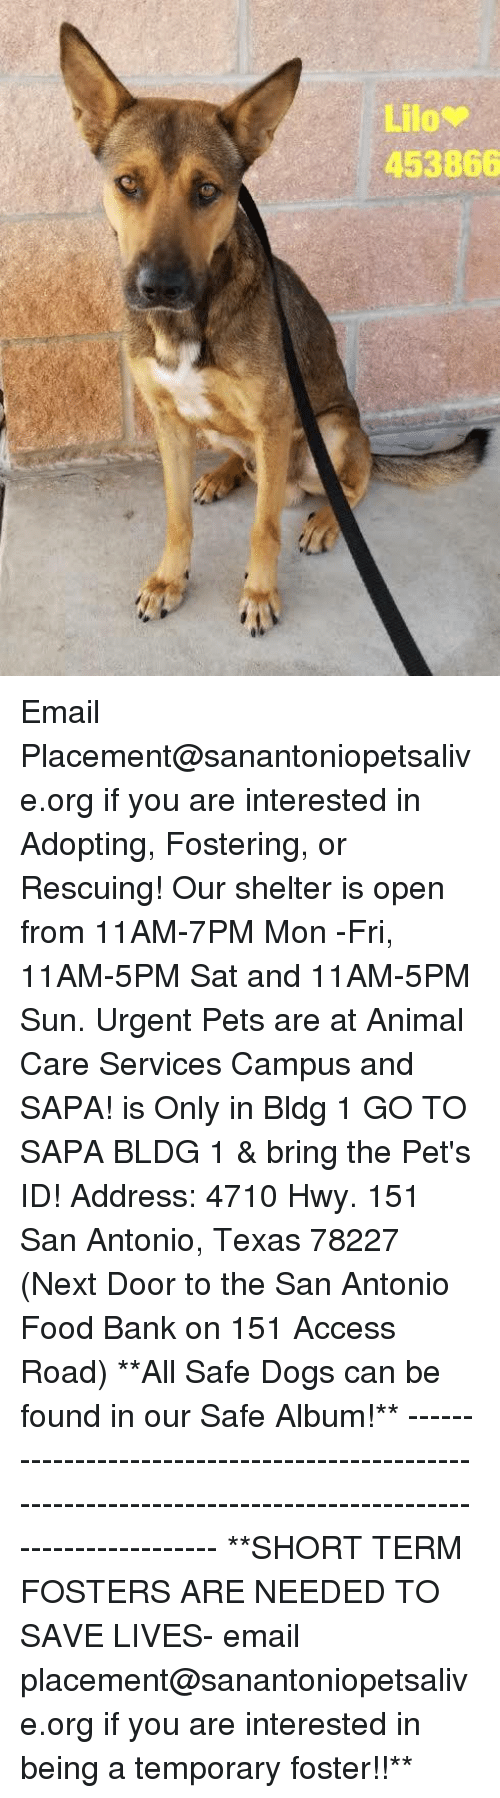 Dogs, Food, and Memes: 453866 Email Placement@sanantoniopetsalive.org if you are interested in Adopting, Fostering, or Rescuing!  Our shelter is open from 11AM-7PM Mon -Fri, 11AM-5PM Sat and 11AM-5PM Sun.  Urgent Pets are at Animal Care Services Campus and SAPA! is Only in Bldg 1 GO TO SAPA BLDG 1 & bring the Pet's ID! Address: 4710 Hwy. 151 San Antonio, Texas 78227 (Next Door to the San Antonio Food Bank on 151 Access Road)  **All Safe Dogs can be found in our Safe Album!** ---------------------------------------------------------------------------------------------------------- **SHORT TERM FOSTERS ARE NEEDED TO SAVE LIVES- email placement@sanantoniopetsalive.org if you are interested in being a temporary foster!!**